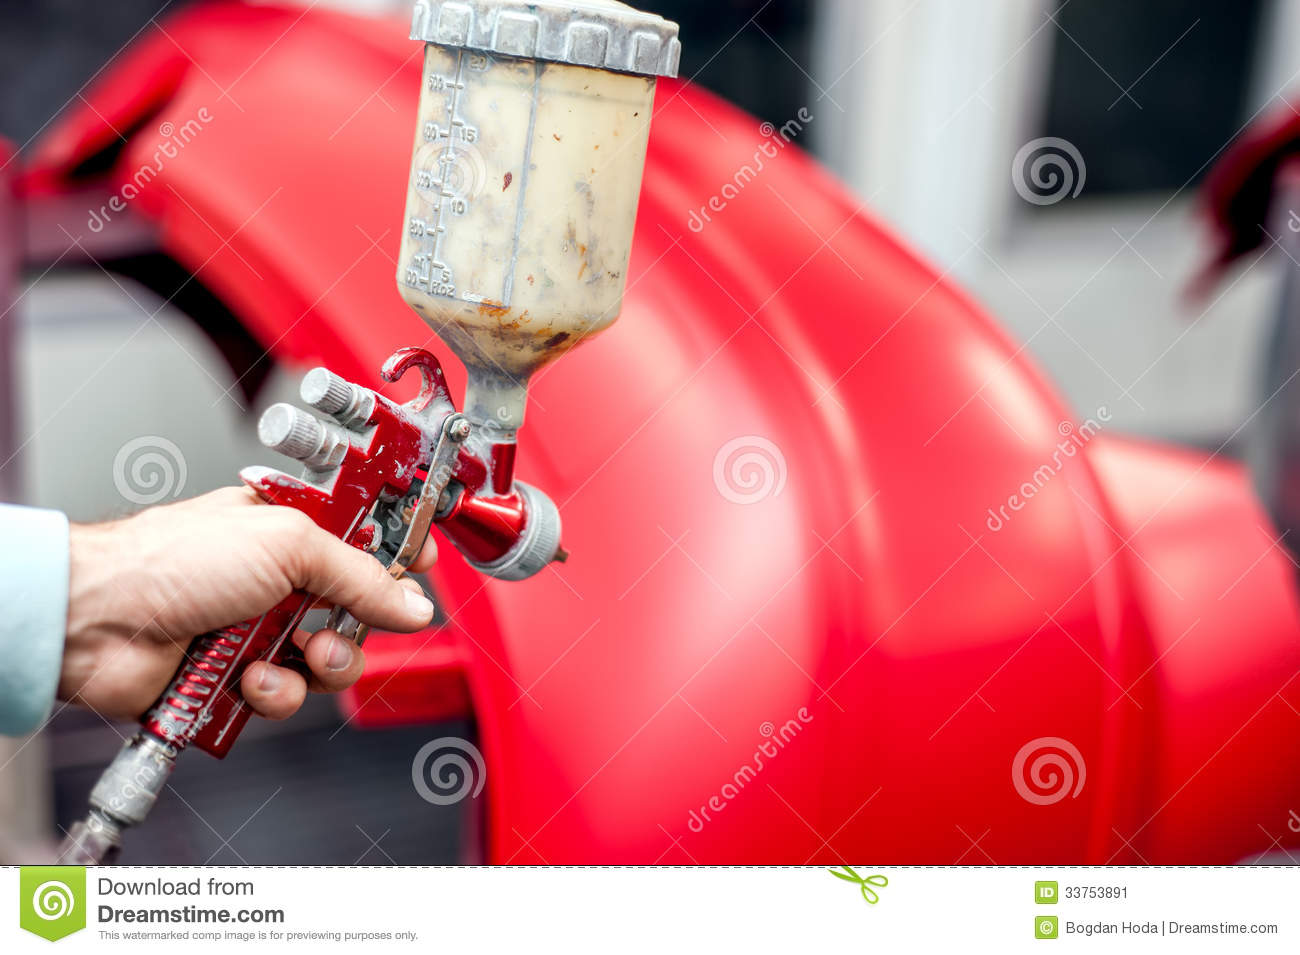 close up of spray gun with red paint painting a car stock image. Black Bedroom Furniture Sets. Home Design Ideas